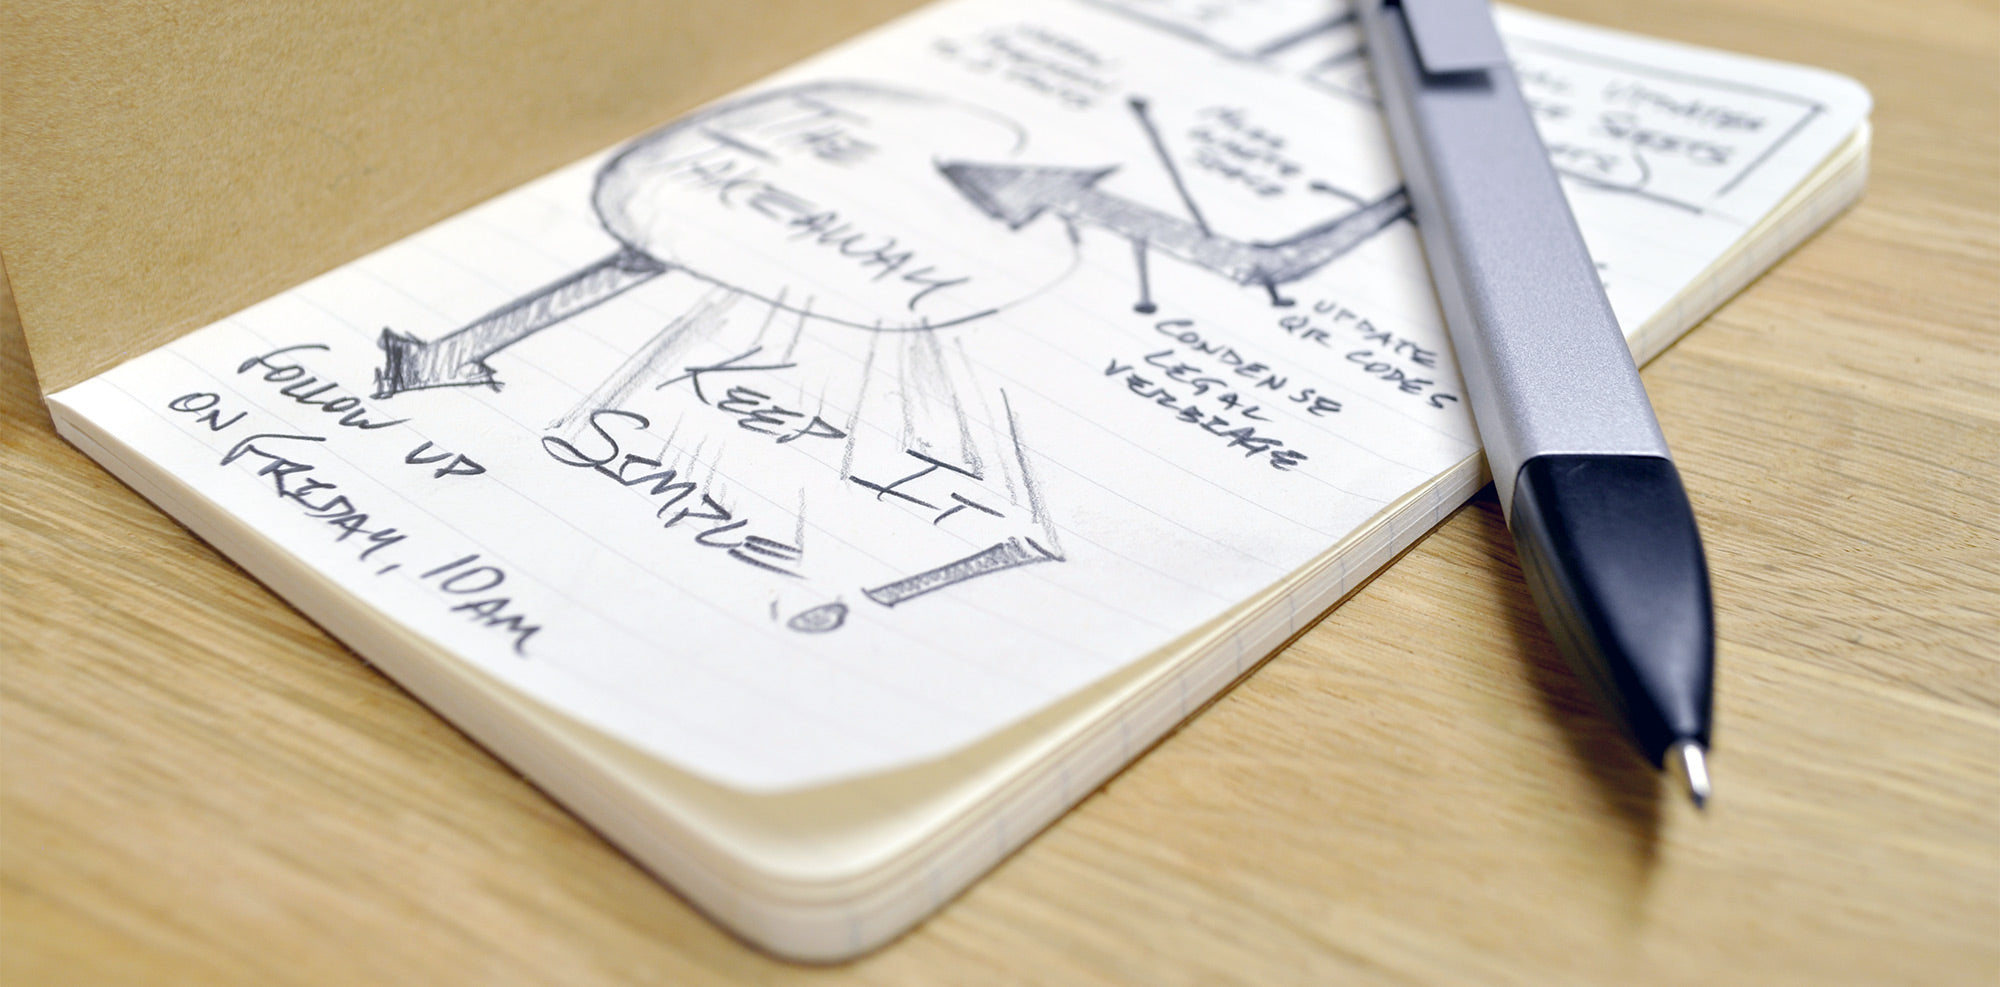 keep your notes simple and concise with a pocket-size notebook